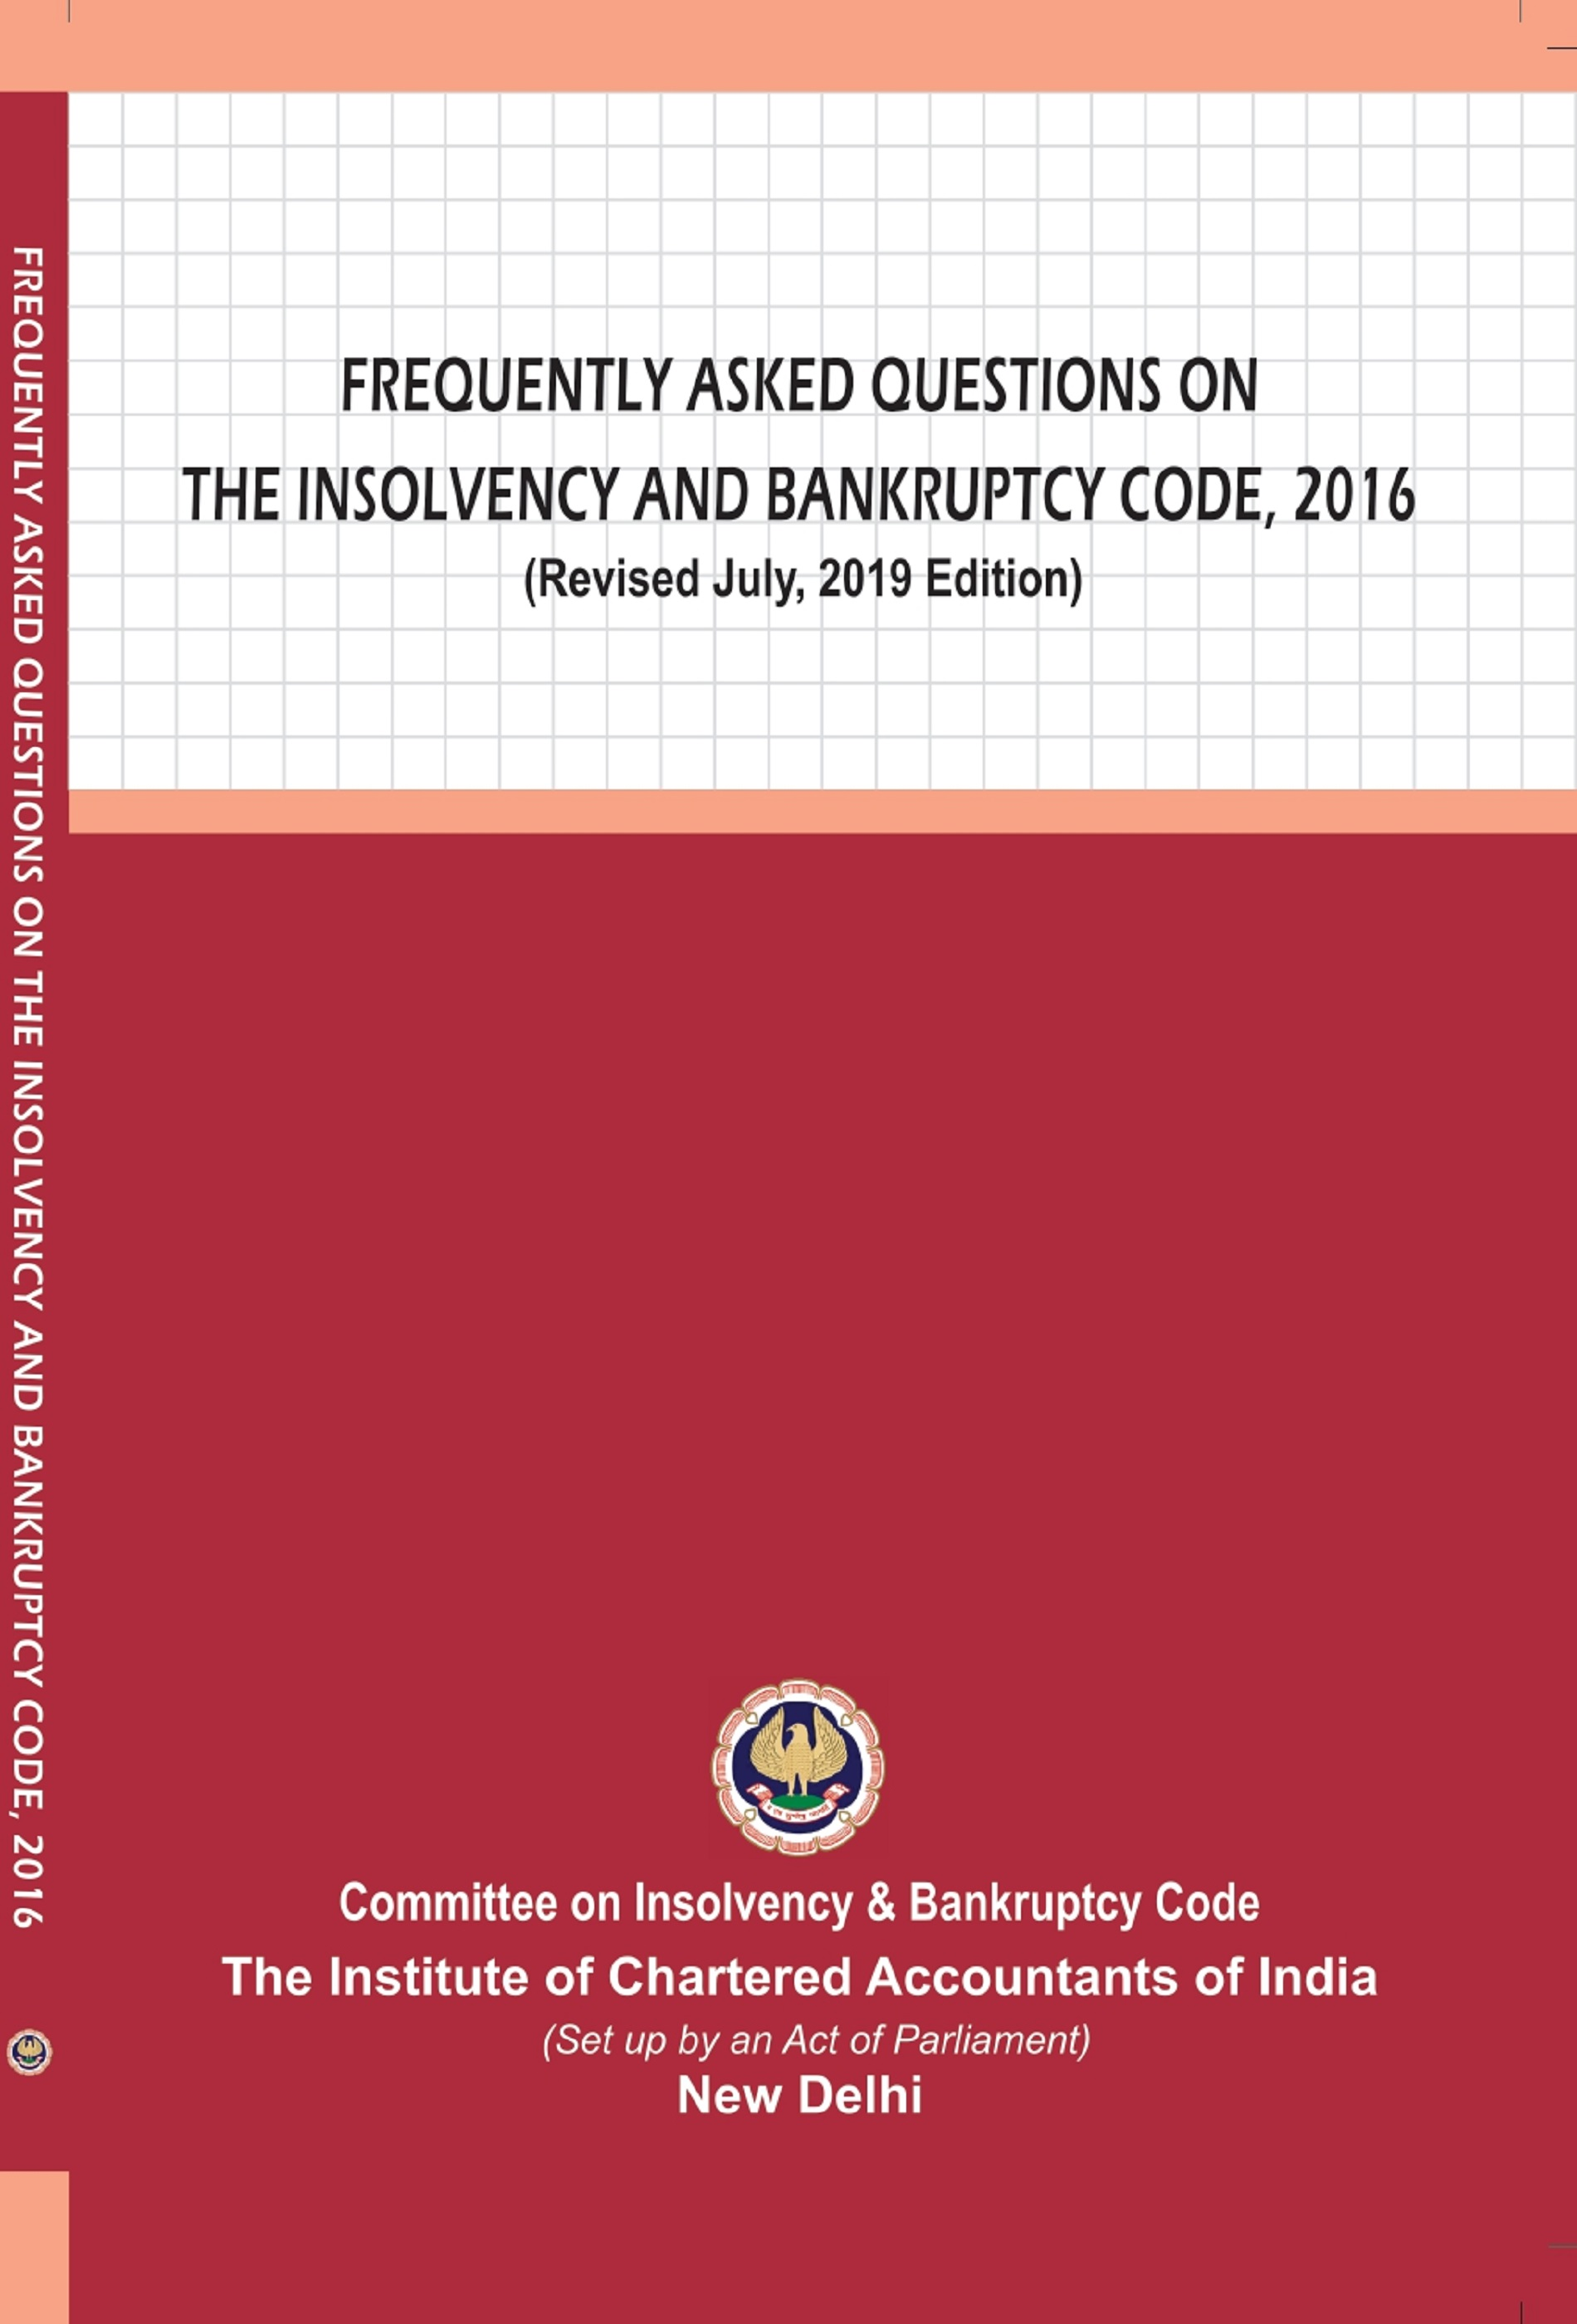 Frequently Asked Questions on The Insolvency and Bankruptcy Code, 2016 (Revised July, 2019 Edition)